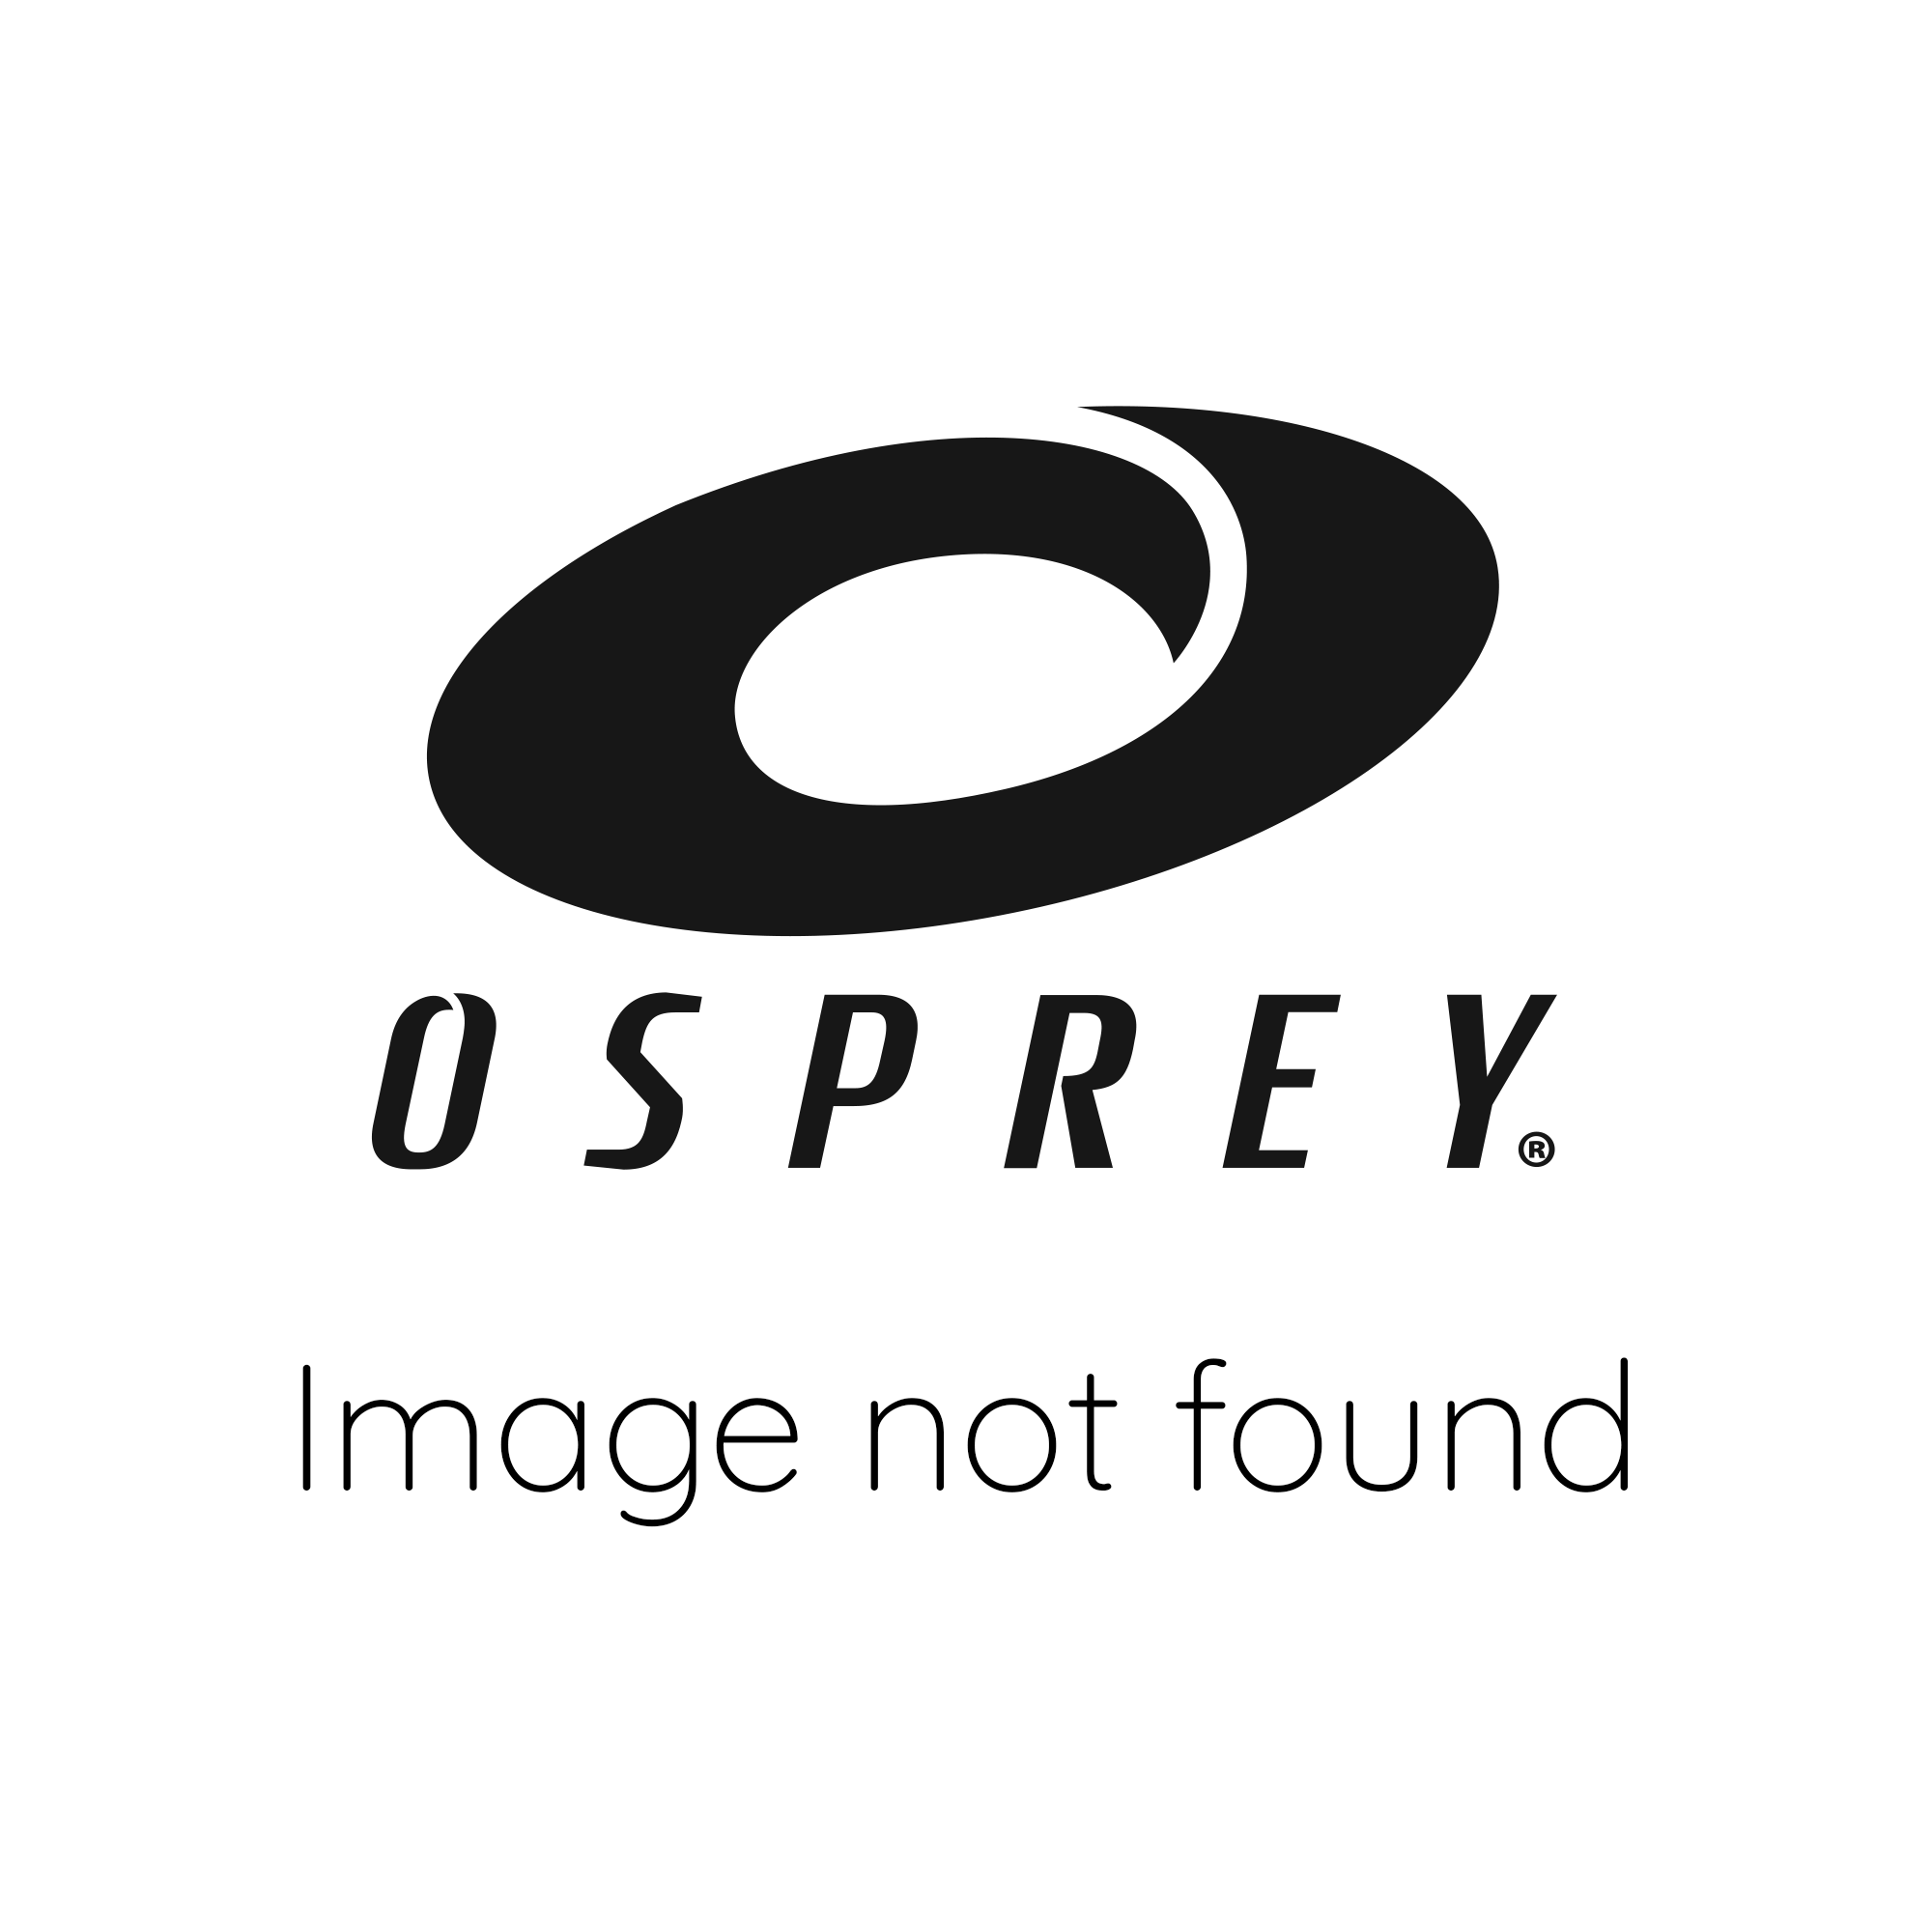 osprey black electric scooter electric scooters scooters. Black Bedroom Furniture Sets. Home Design Ideas